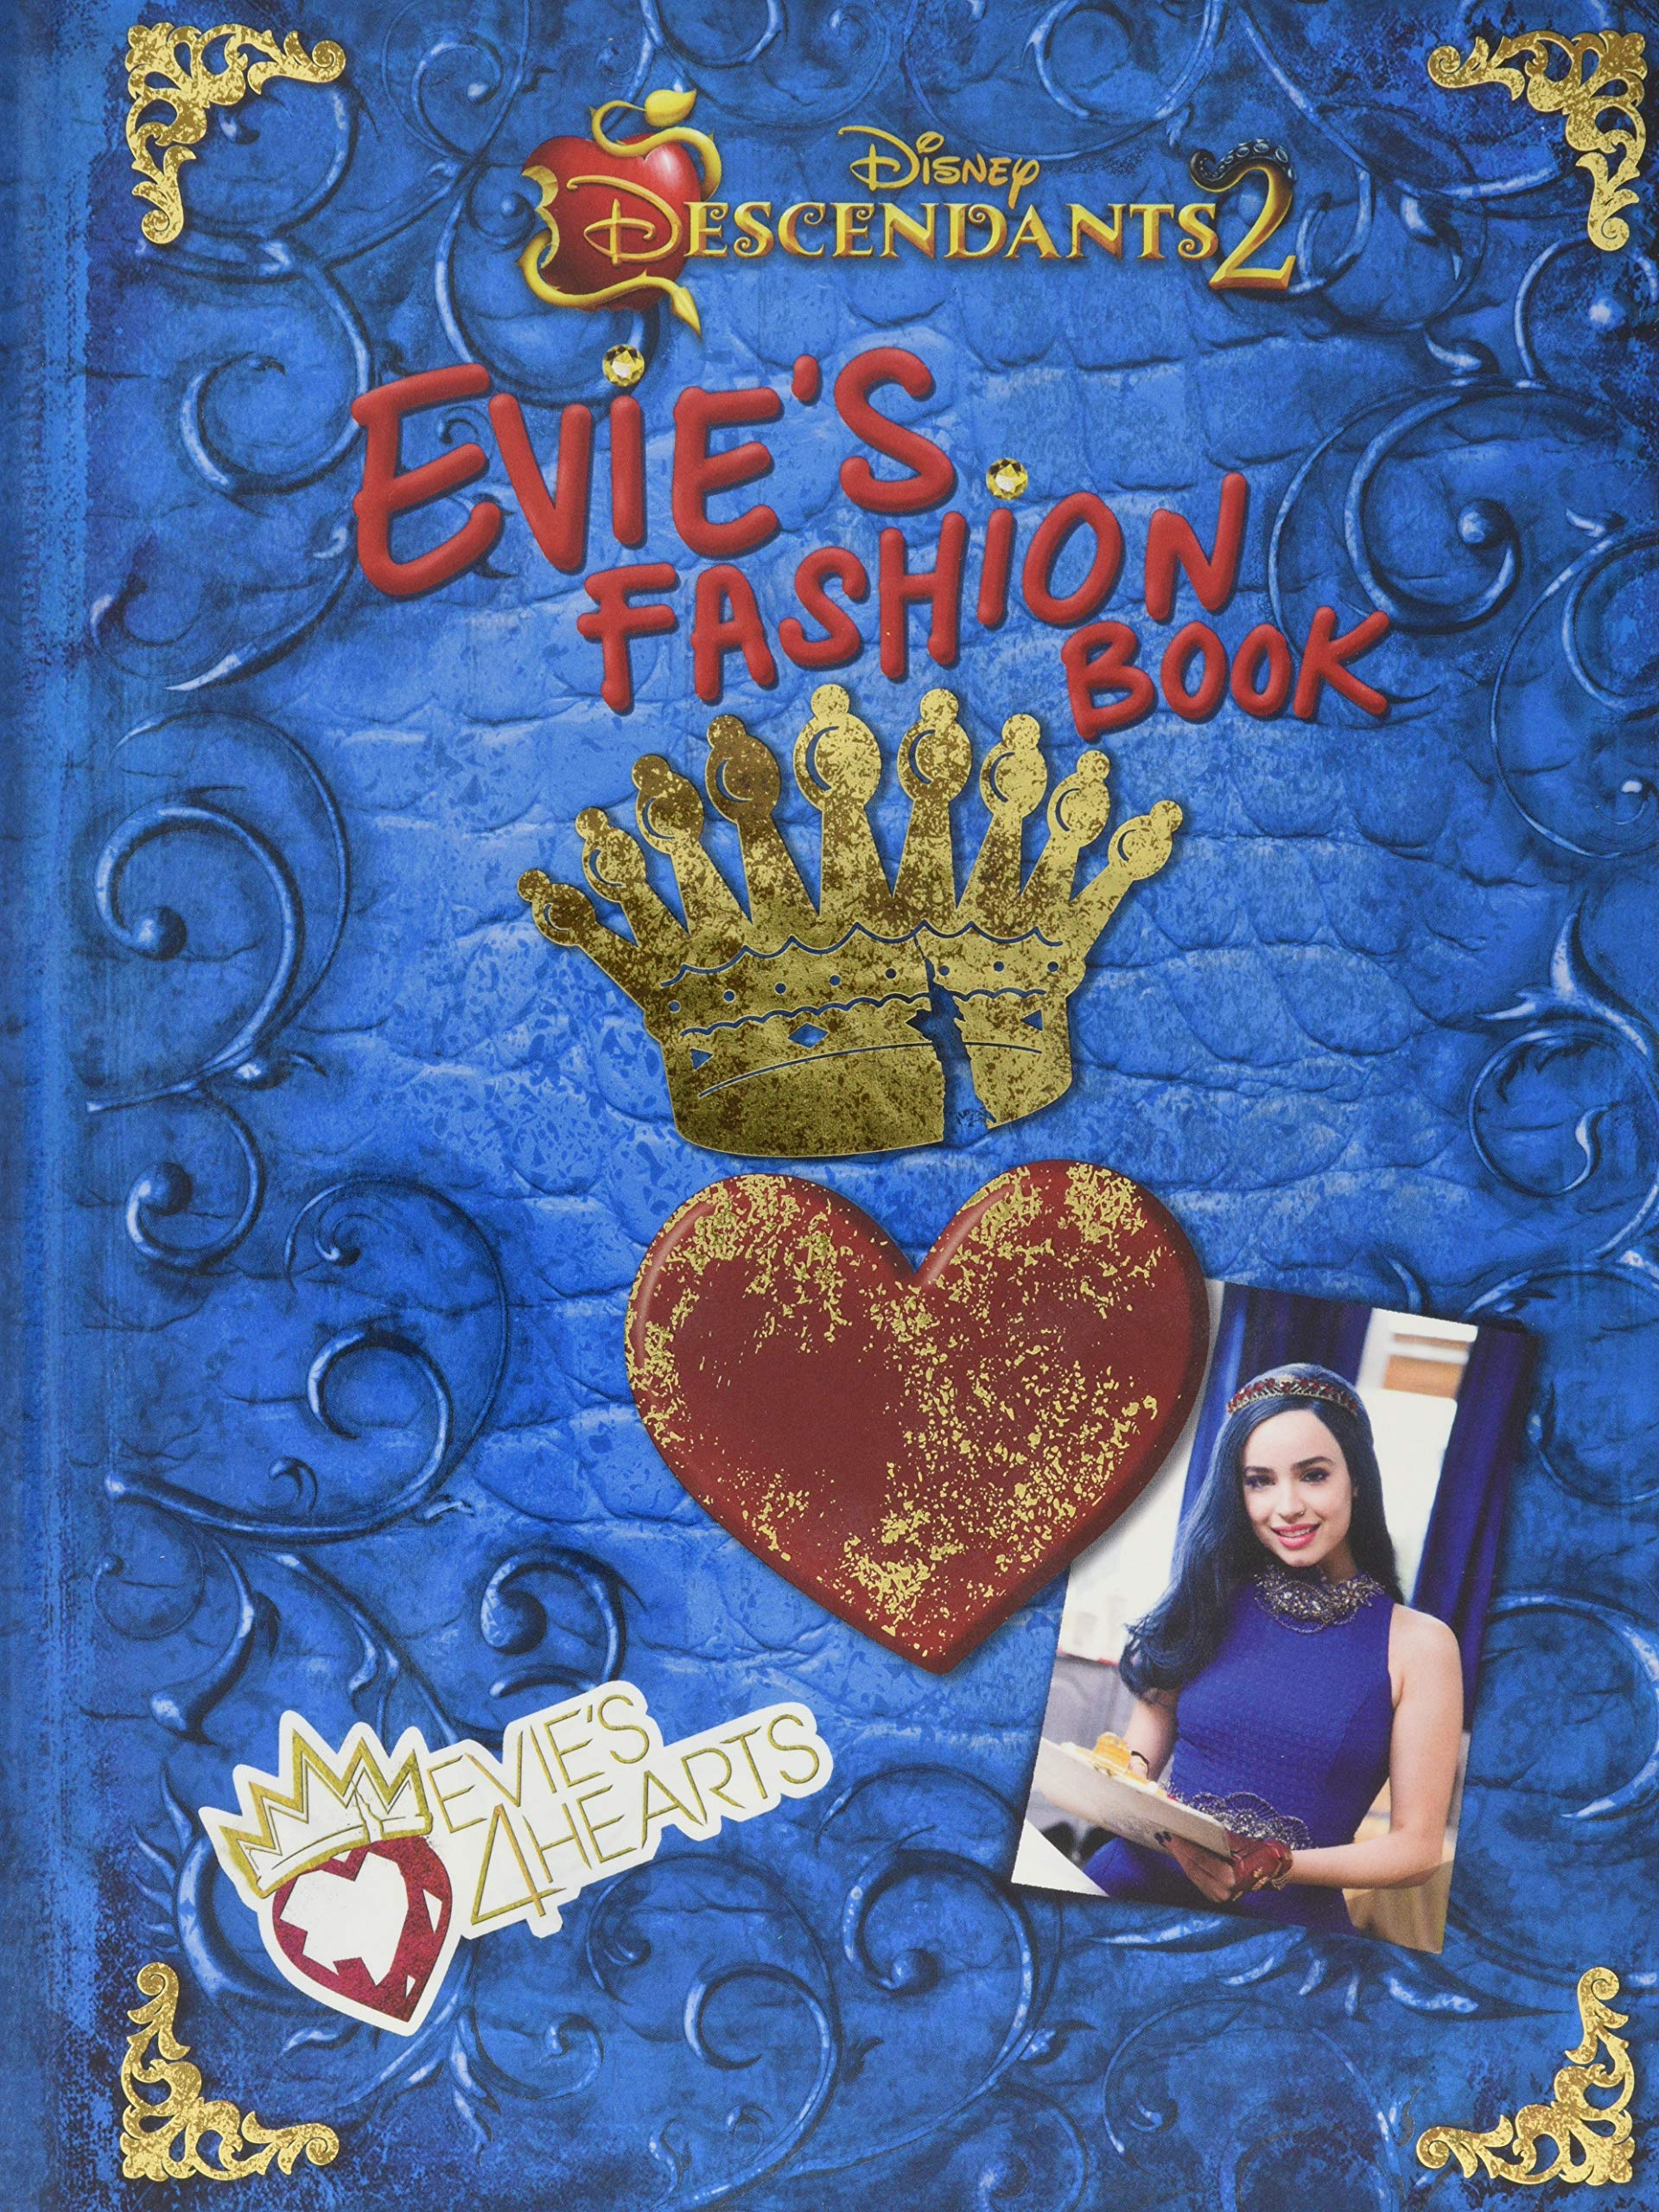 Amazon com: Descendants 2 Evie's Fashion Book (Disney